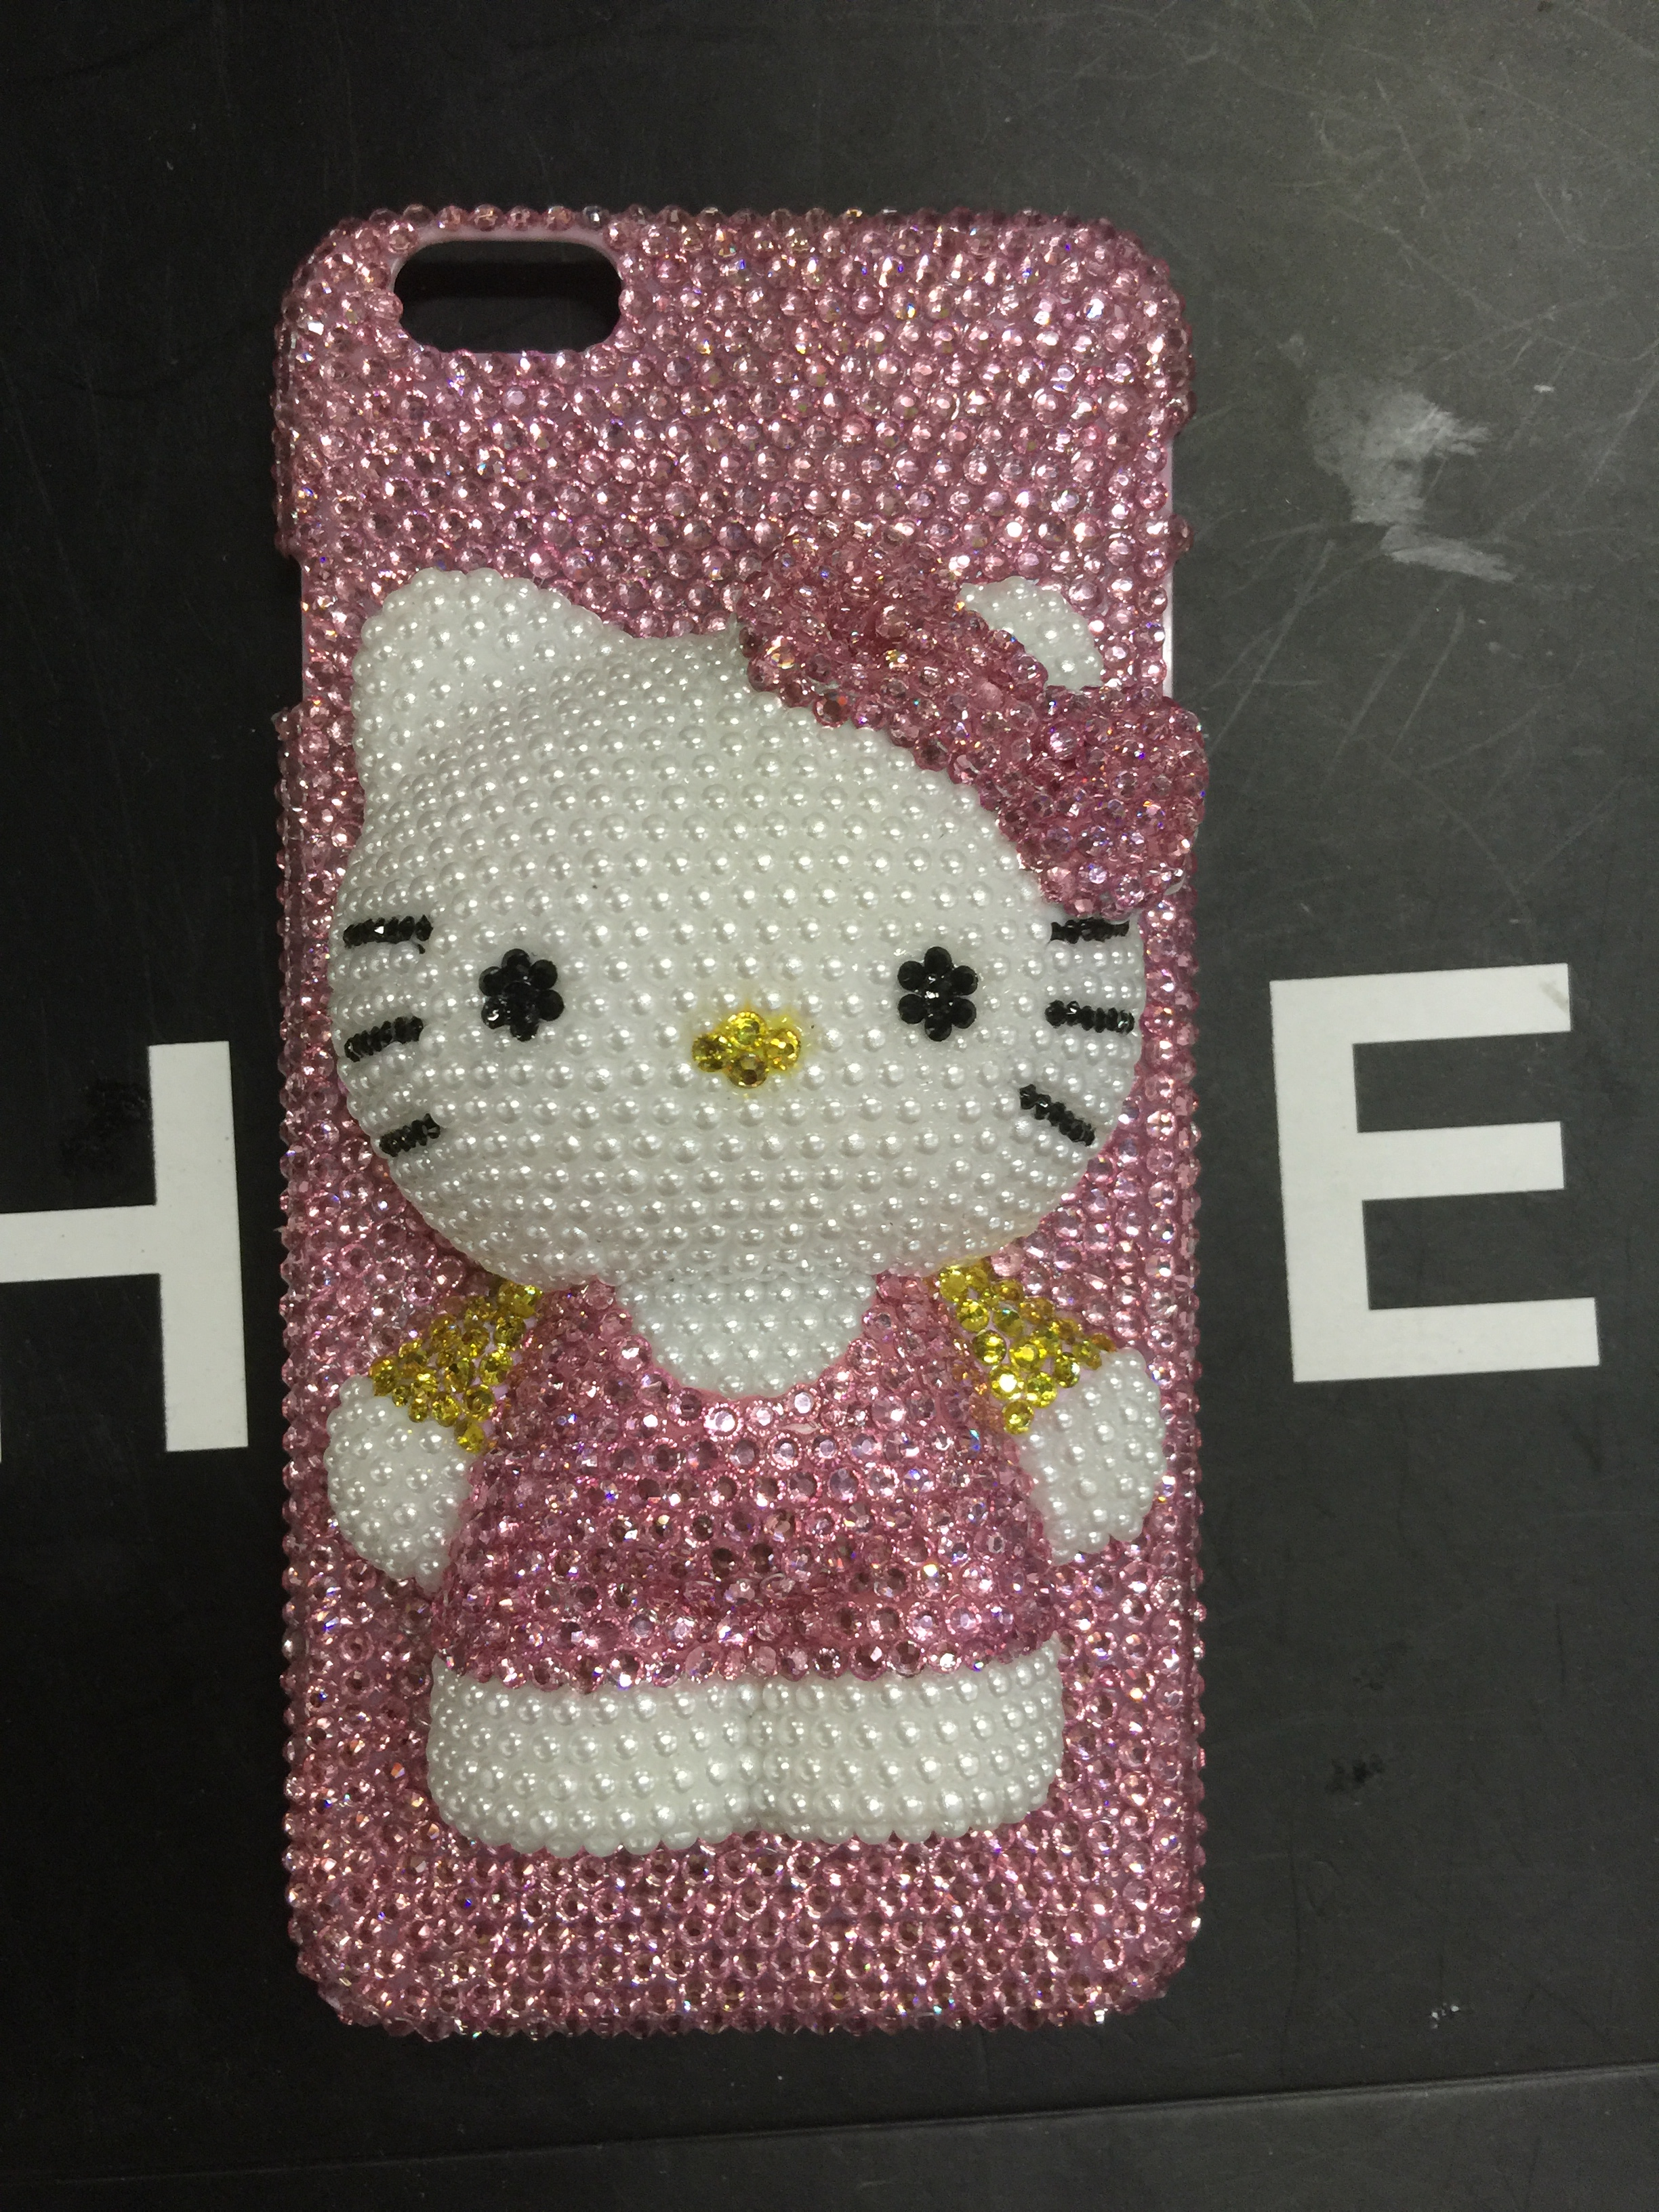 518f9a246 hello kitty iPhone 6 Case AB swarovski crystal pink rhinestone iPhone 6s  Case, 3D bling iPhone 6s Plus Case, iPhone 5s case, customize iPhone cases  iPhone ...